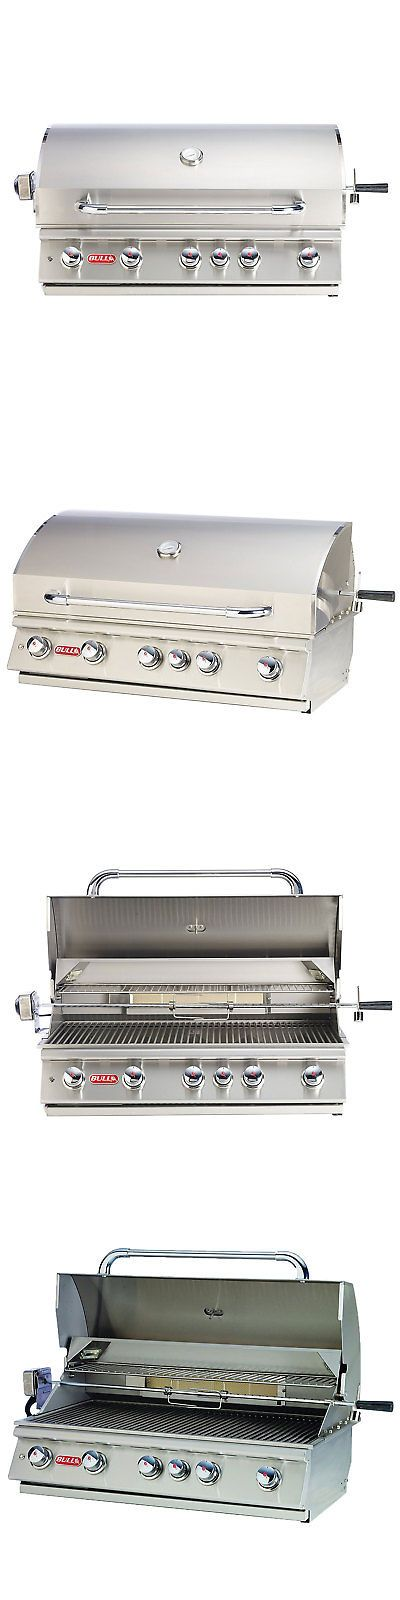 Barbecues Grills and Smokers 151621: Bull Outdoor Products 5 Burner 90,000 Btus Brahma Natural Gas Outdoor Grill Head -> BUY IT NOW ONLY: $2076.99 on eBay!